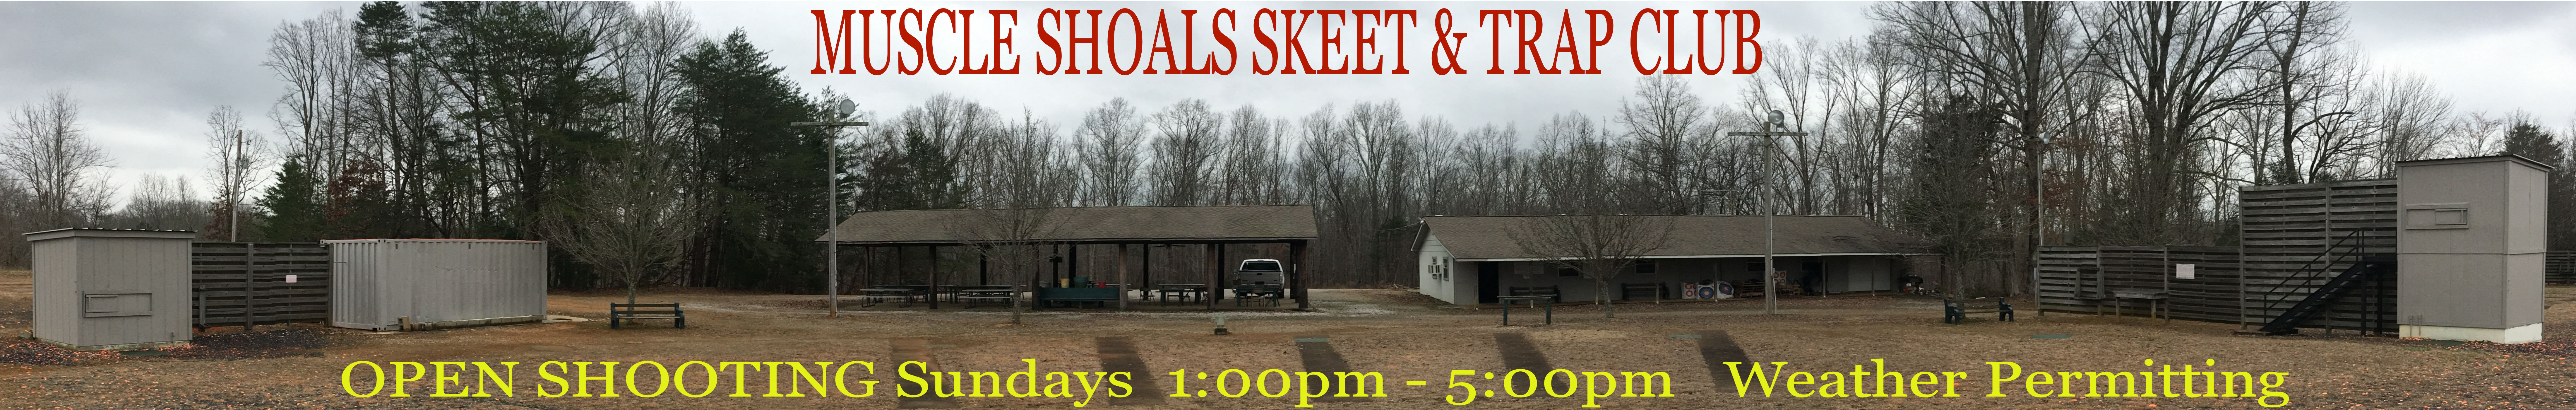 Muscle Shoals Skeet and Trap Club..